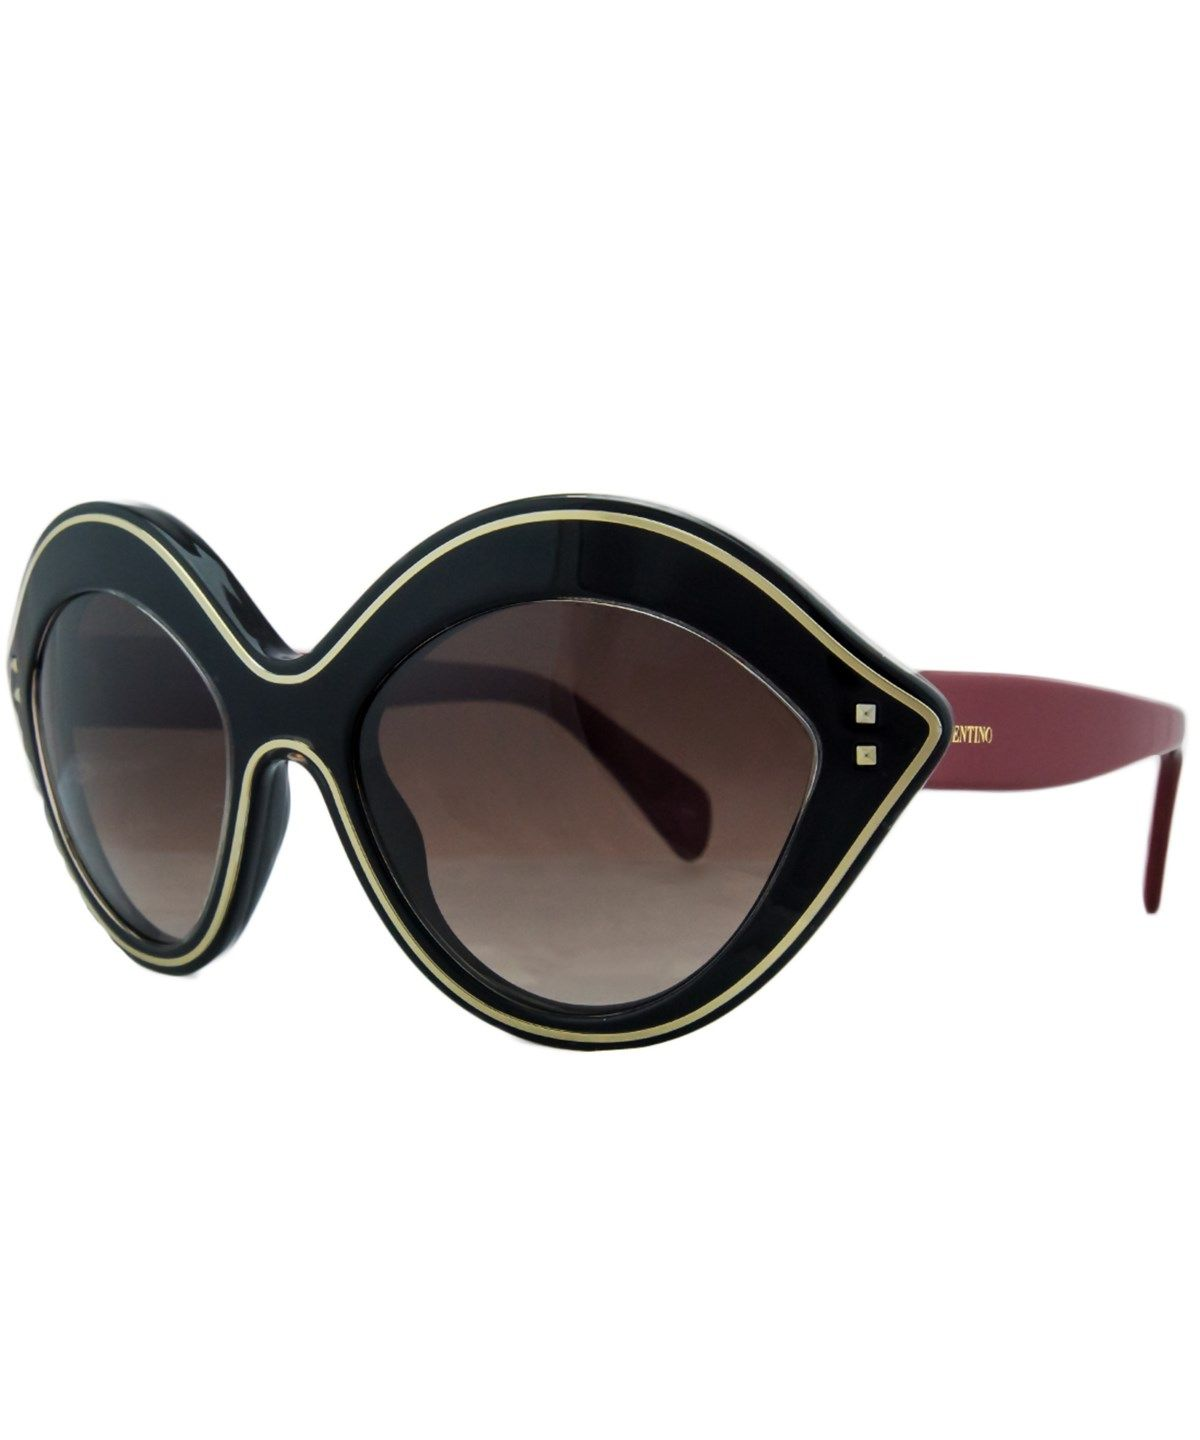 7e0eb5f6c02 VALENTINO V689 S 017 Black Red Oval Sunglasses .  valentino  sunglasses